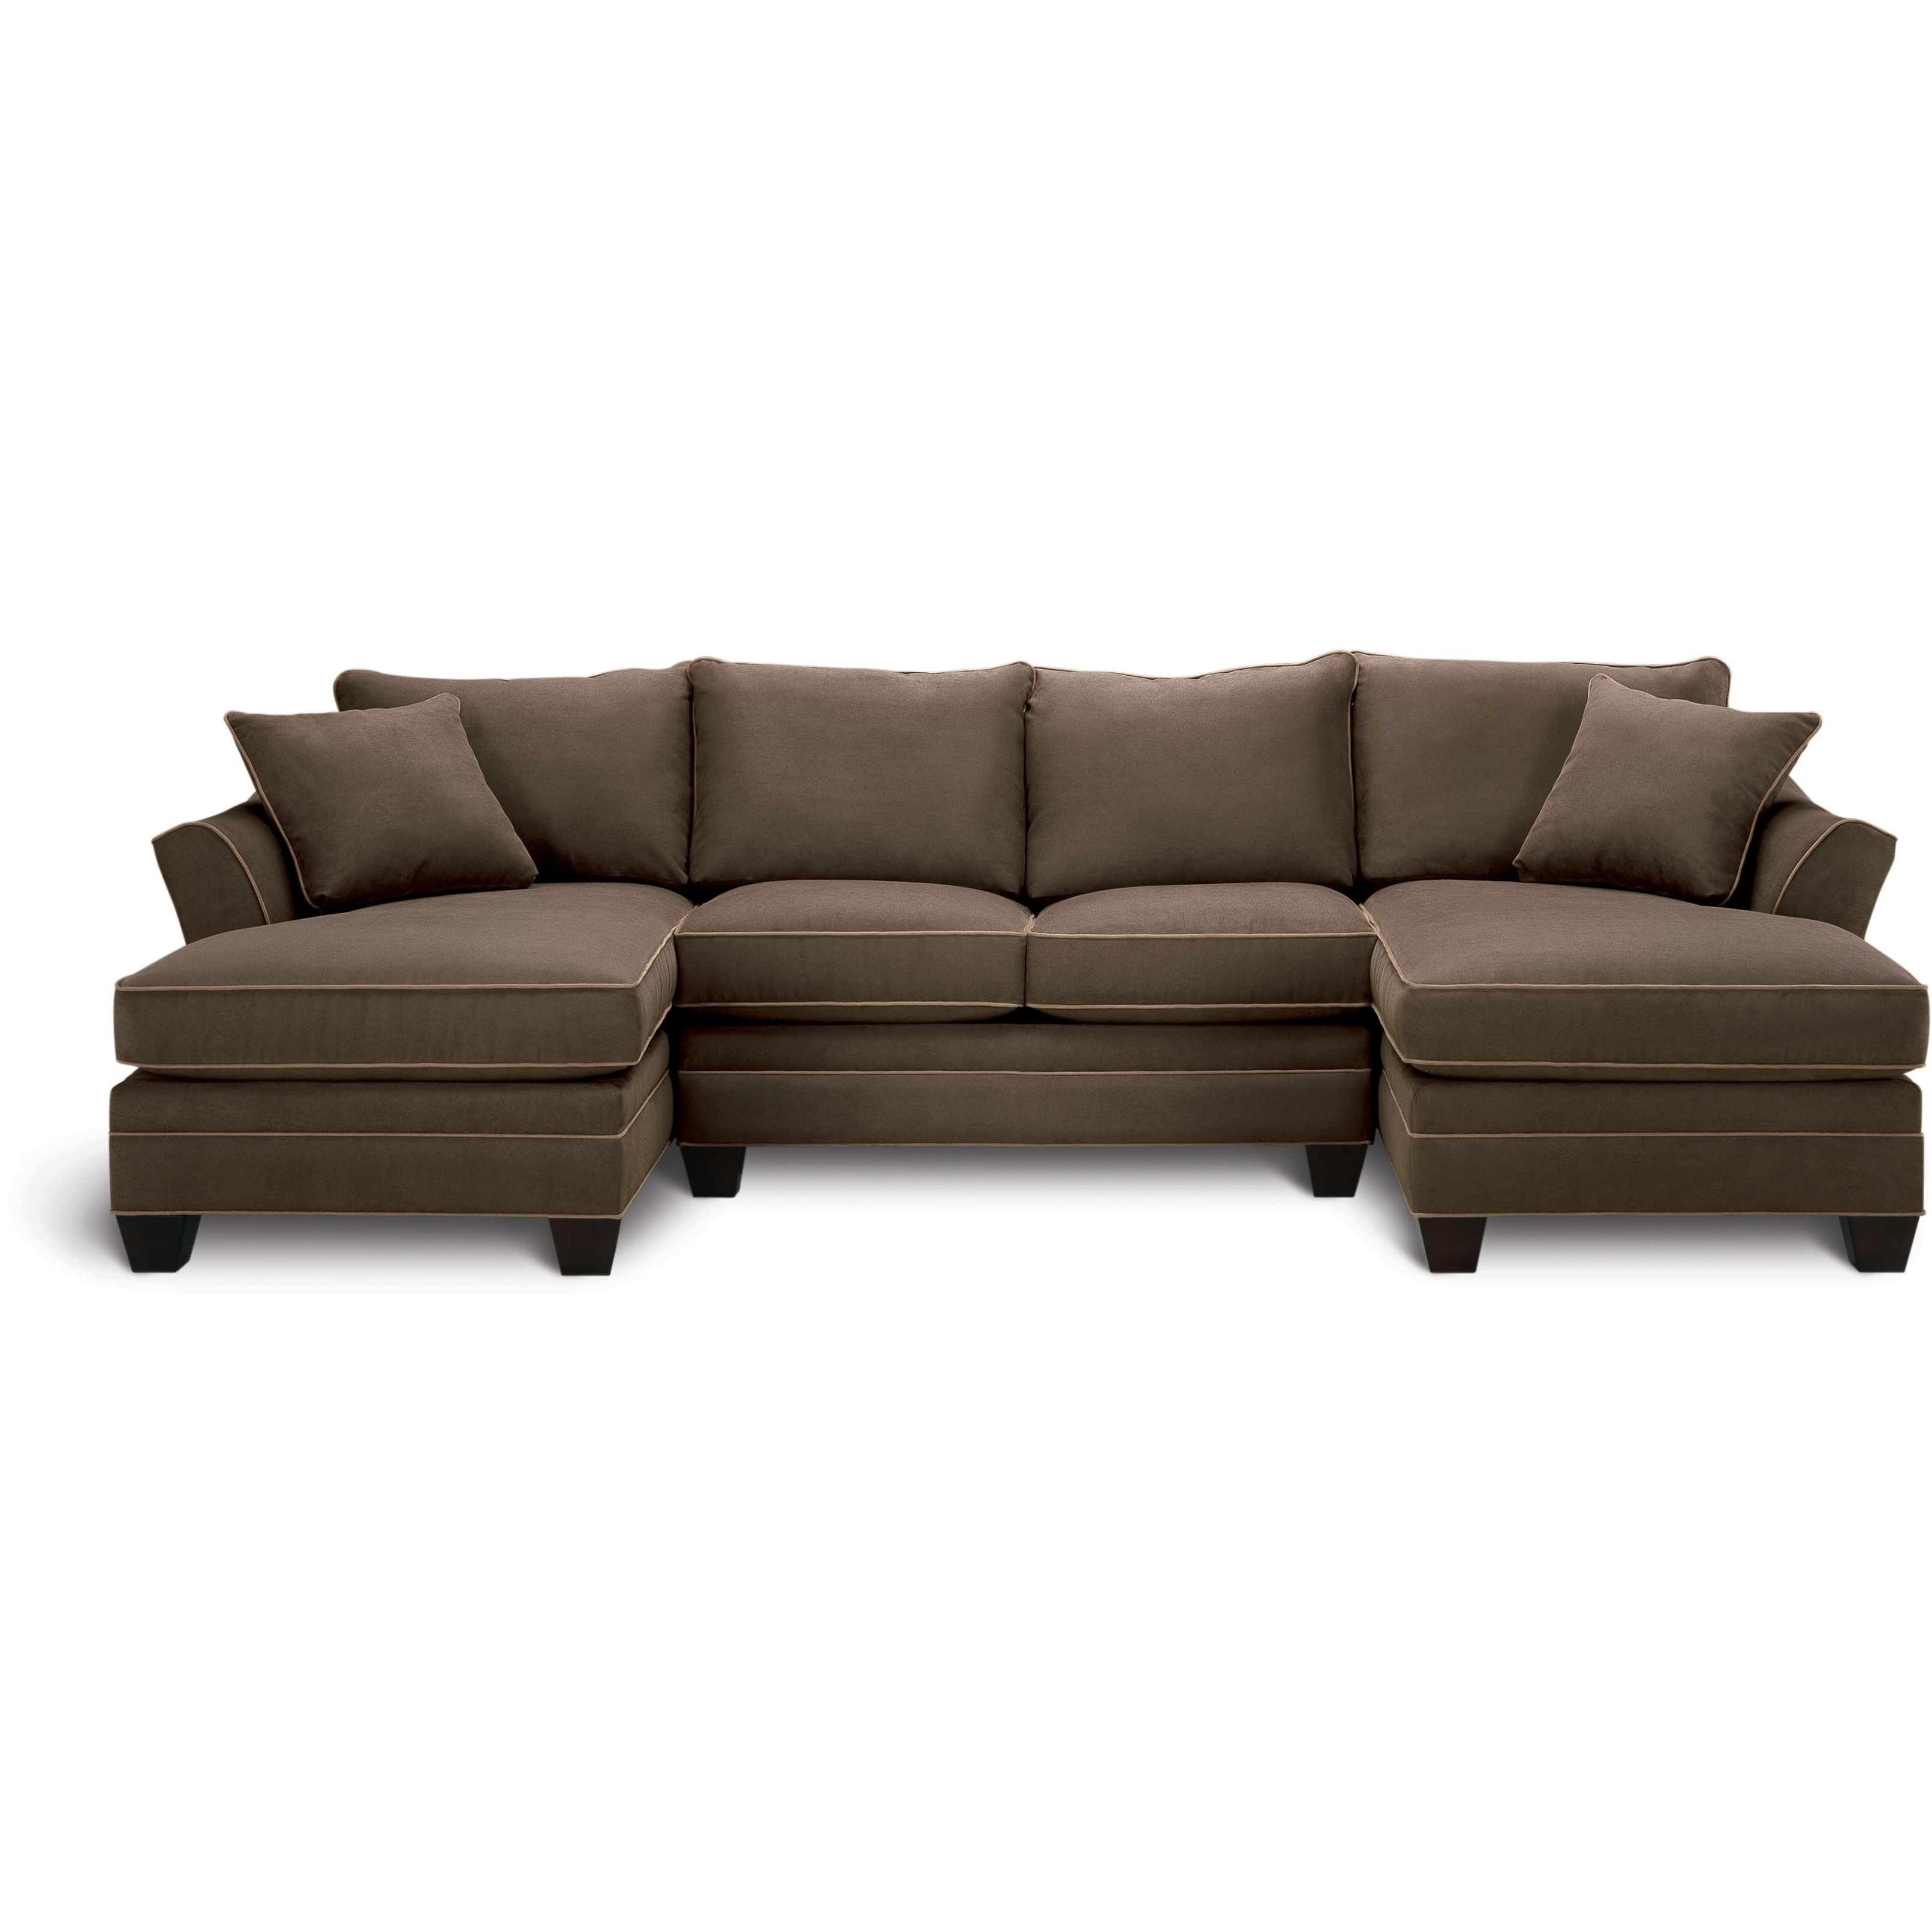 Make The Most Of Your Space With The Dillon Sectional That Offers Pertaining To Well Known Sectional Sofas Art Van (View 6 of 15)